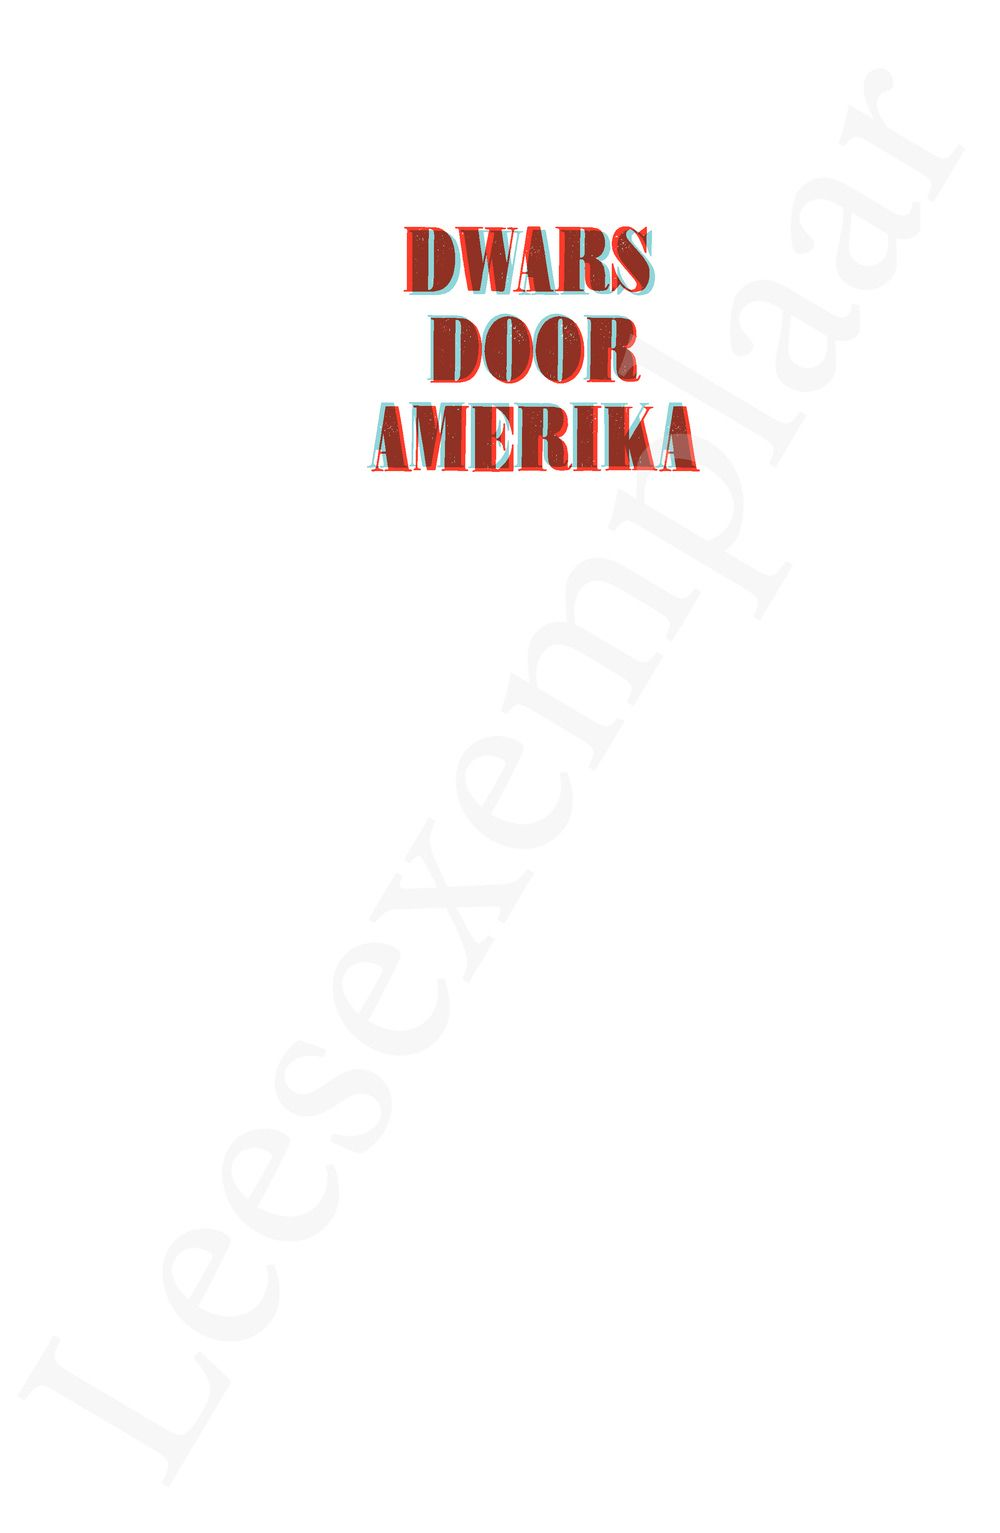 Preview: Dwars door Amerika